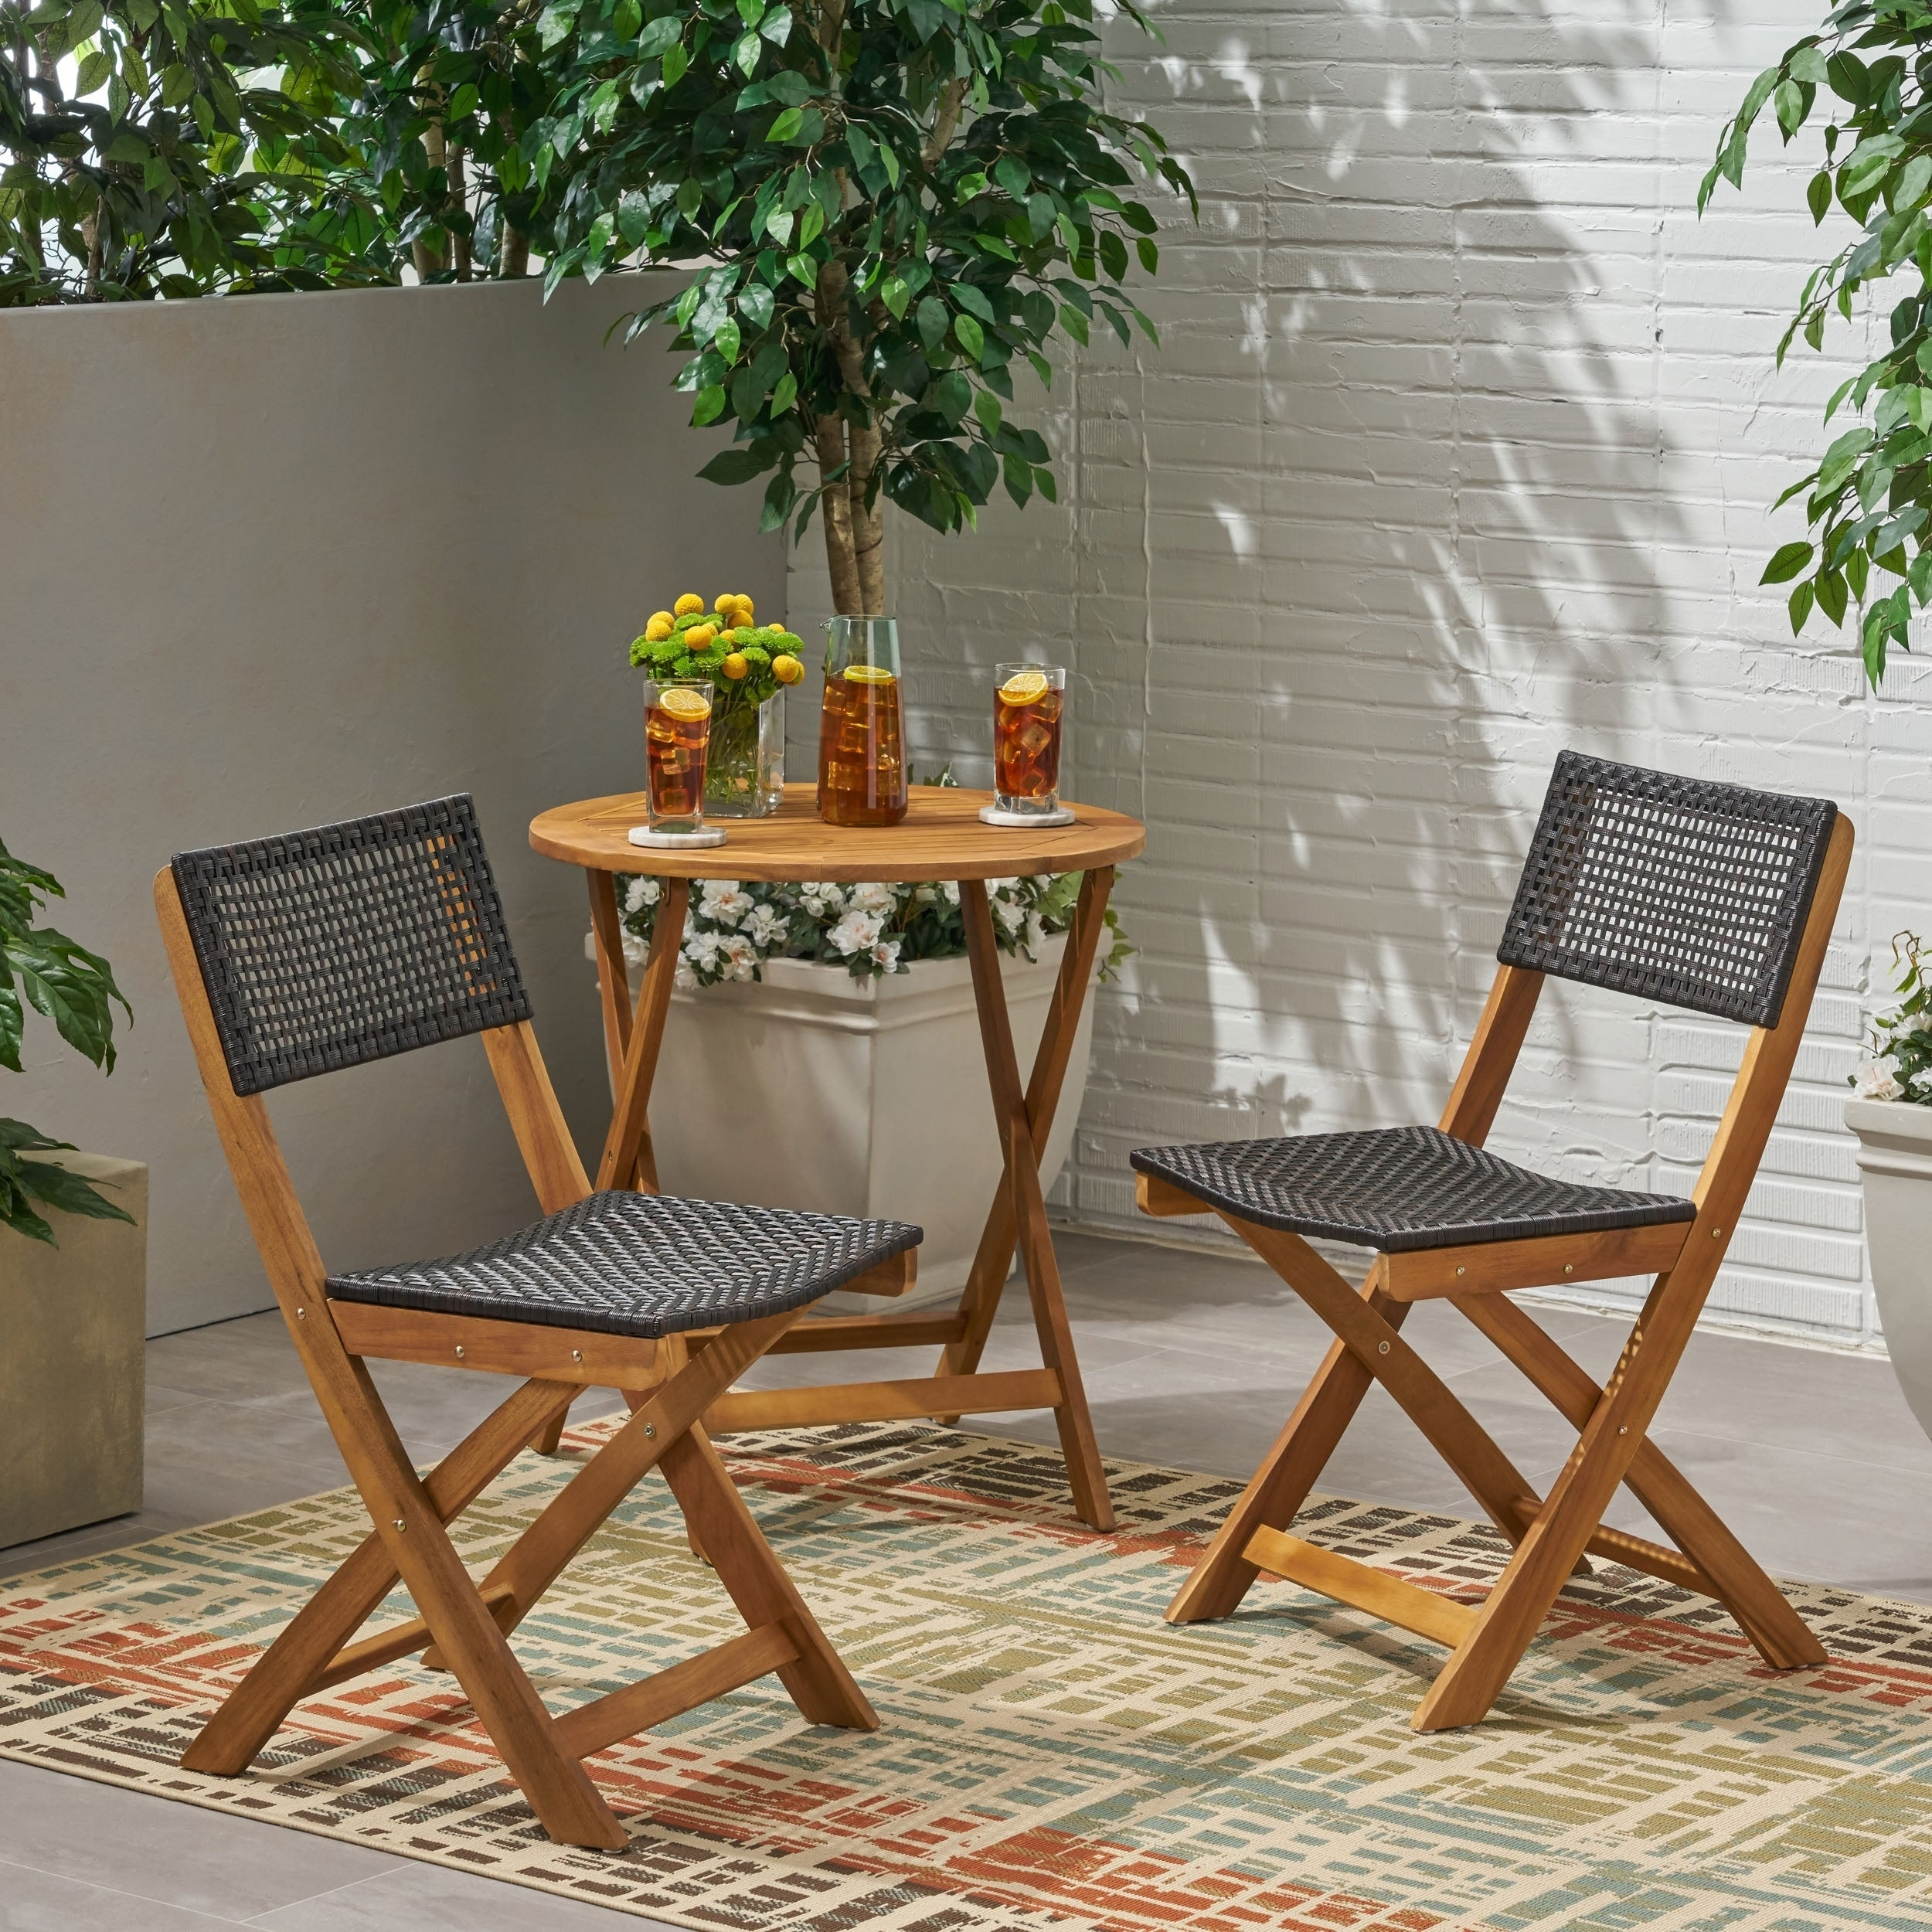 Hillside Outdoor Acacia Wood Foldable Bistro Chairs With Wicker Seating Set Of 2 By Christopher Knight Home